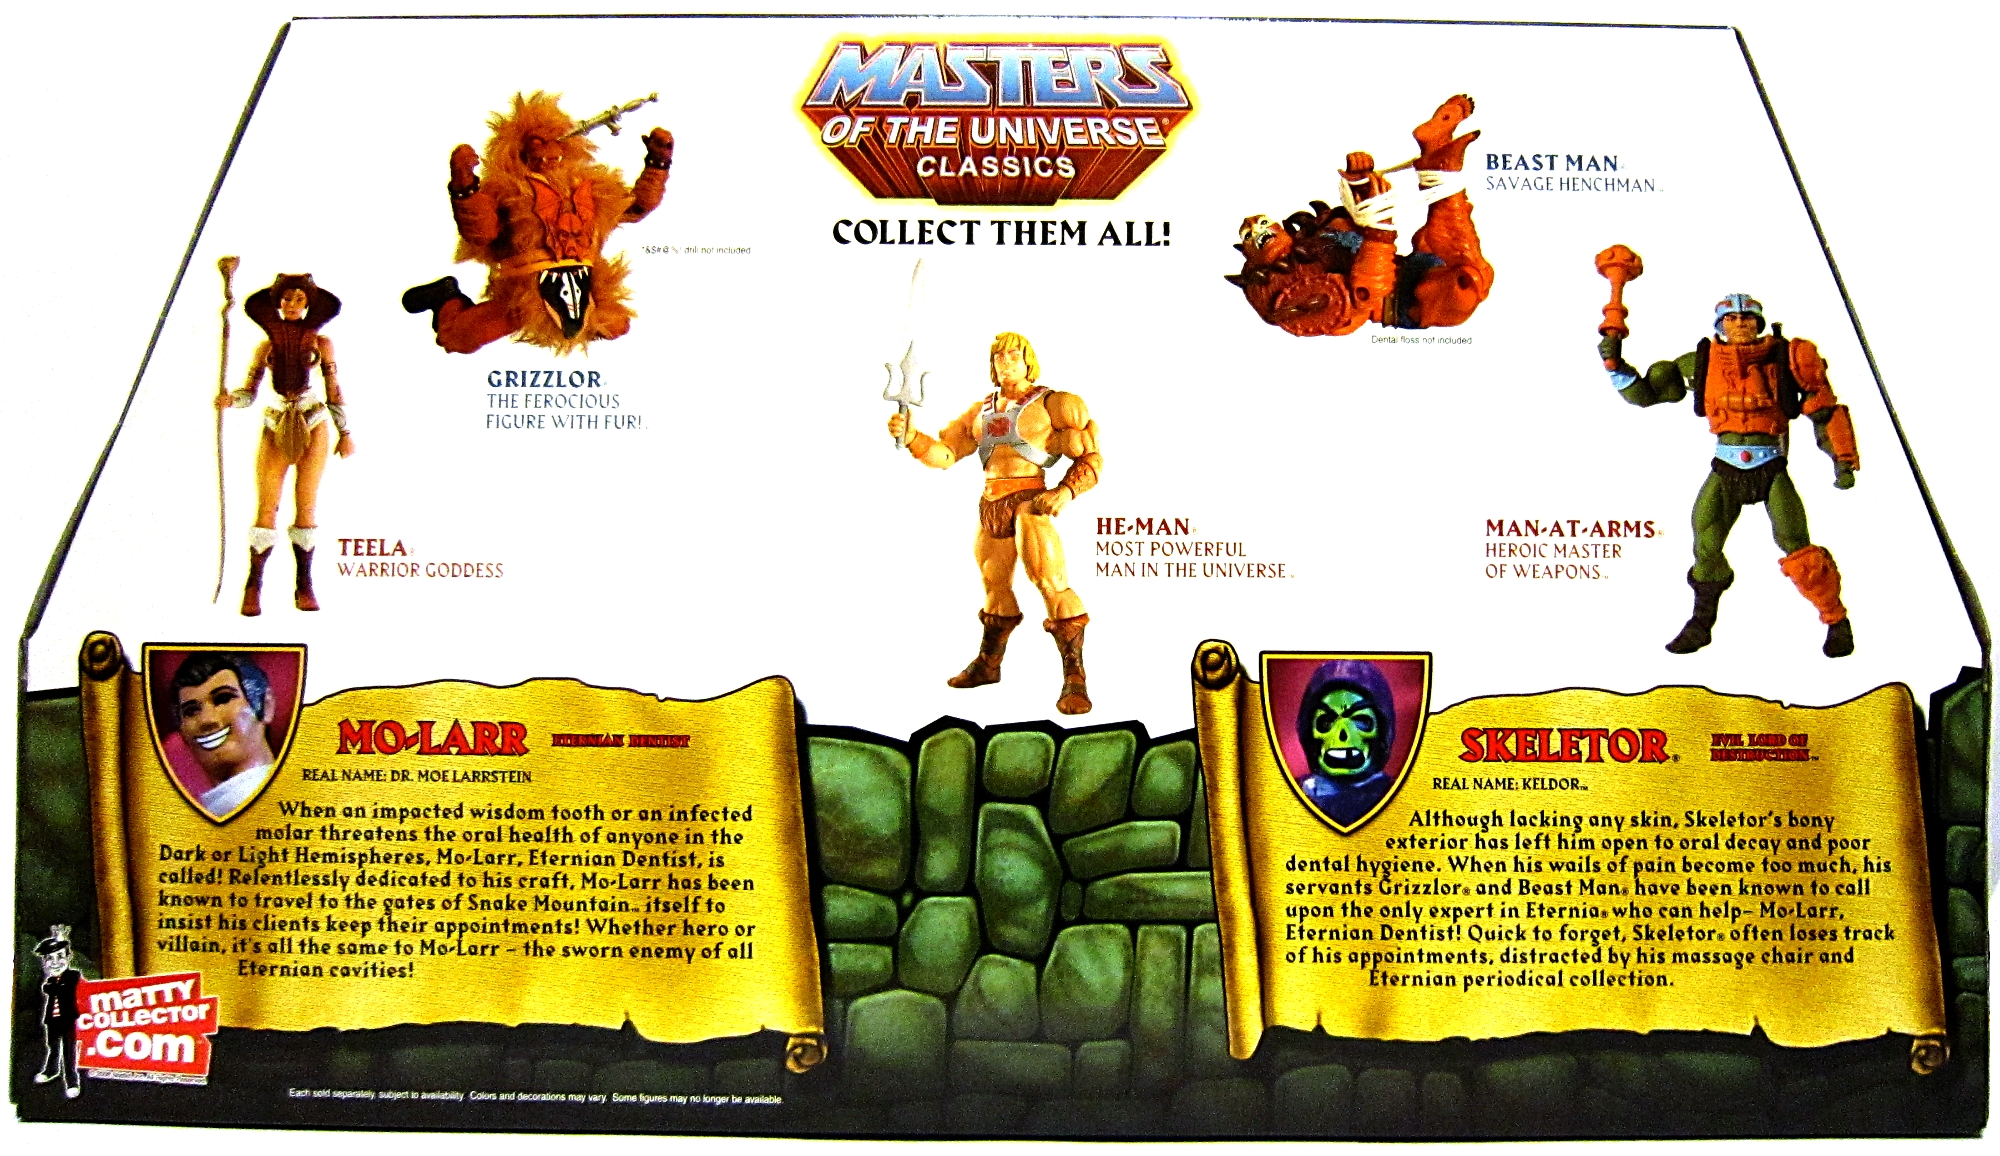 He Man Org Gt Toys Gt Masters Of The Universe Classics Gt Mo